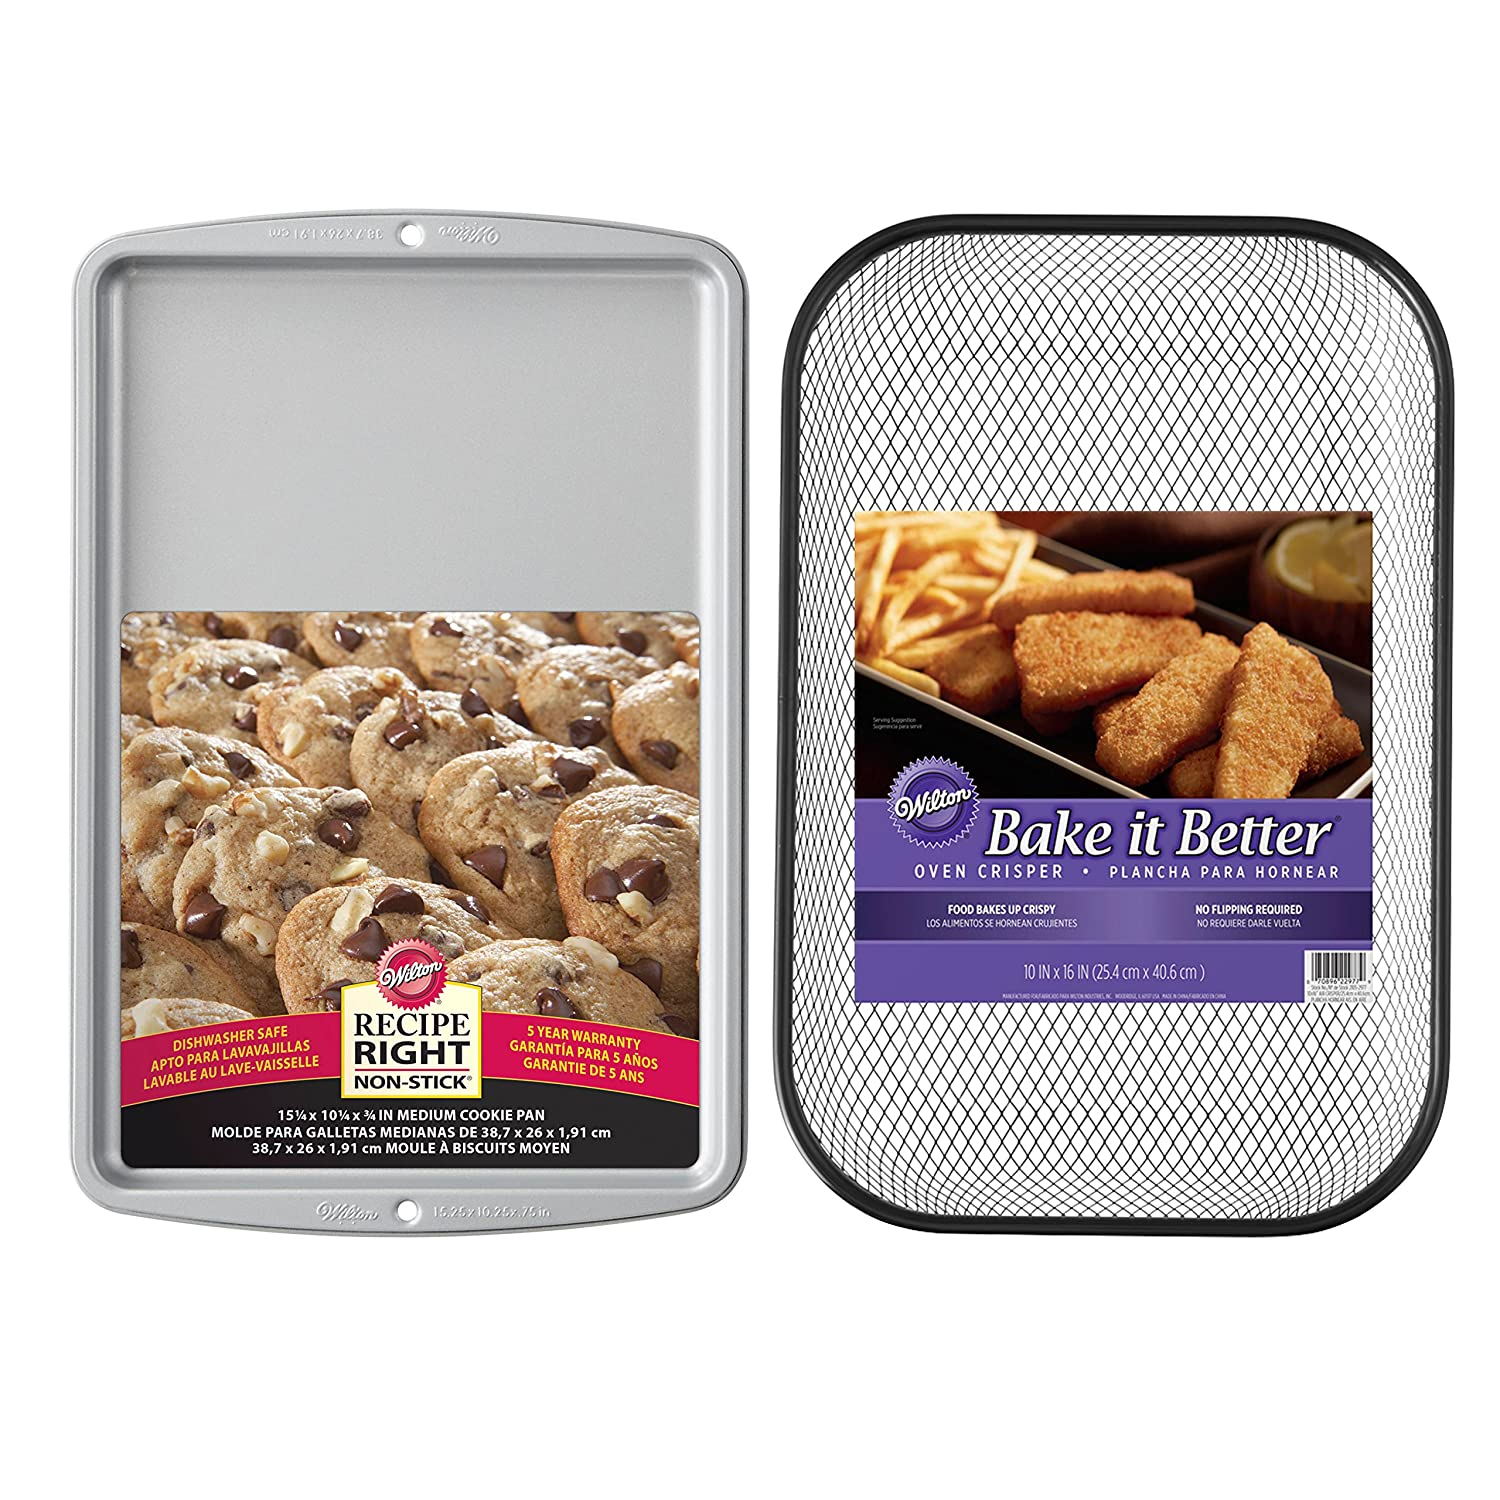 Amazon.com: Wilton Bake It Better Non-Stick Oven Crisper Basket and Non-Stick Baking Sheet Set, 2-Piece Oven Air Fryer Set: Kitchen & Dining